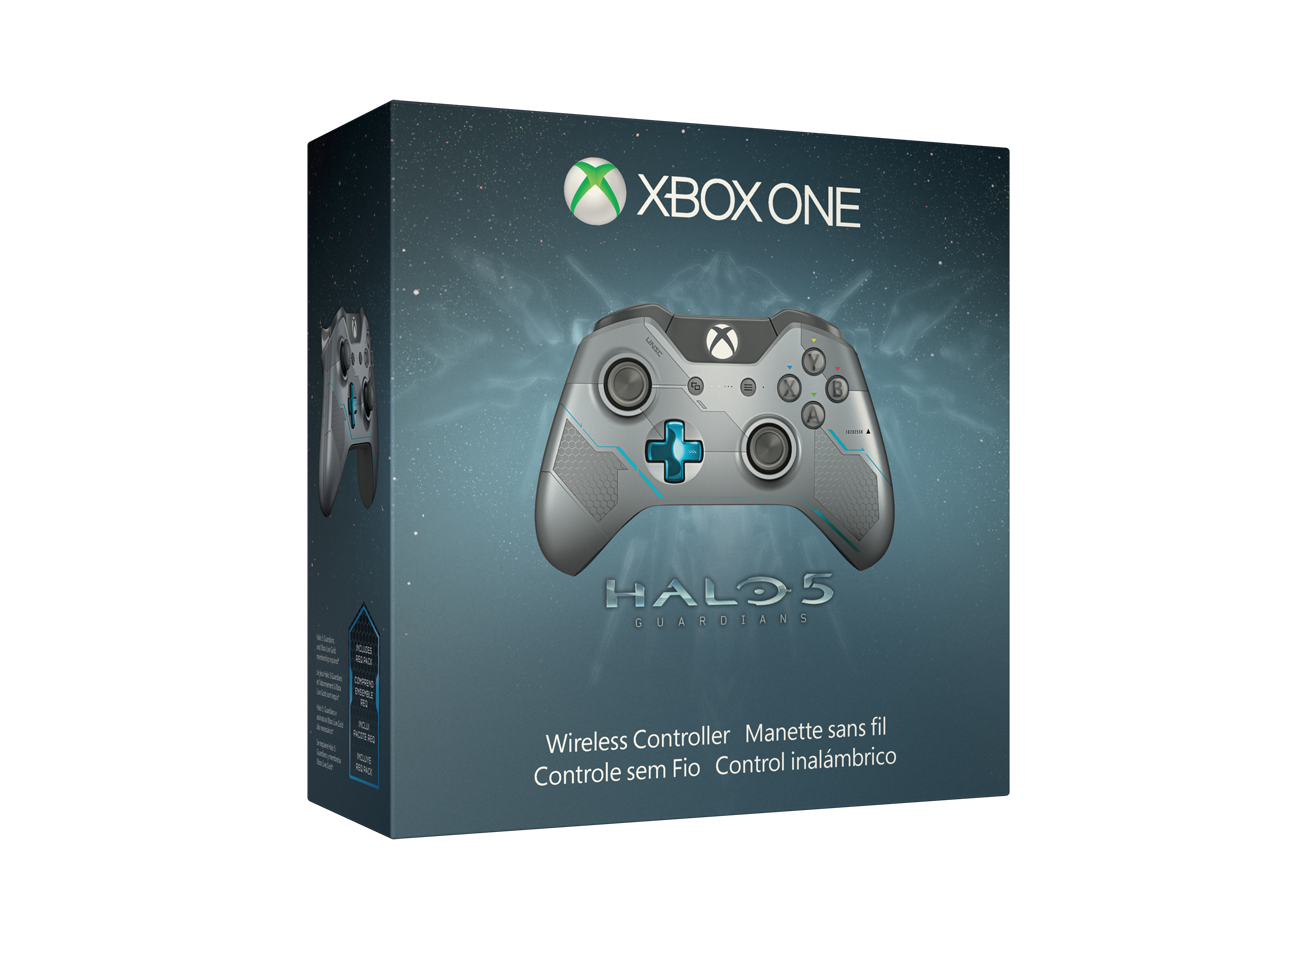 Xbox-One-Limited-Edition-Halo-5-Locke-Controller-Right-Box-Shot-png